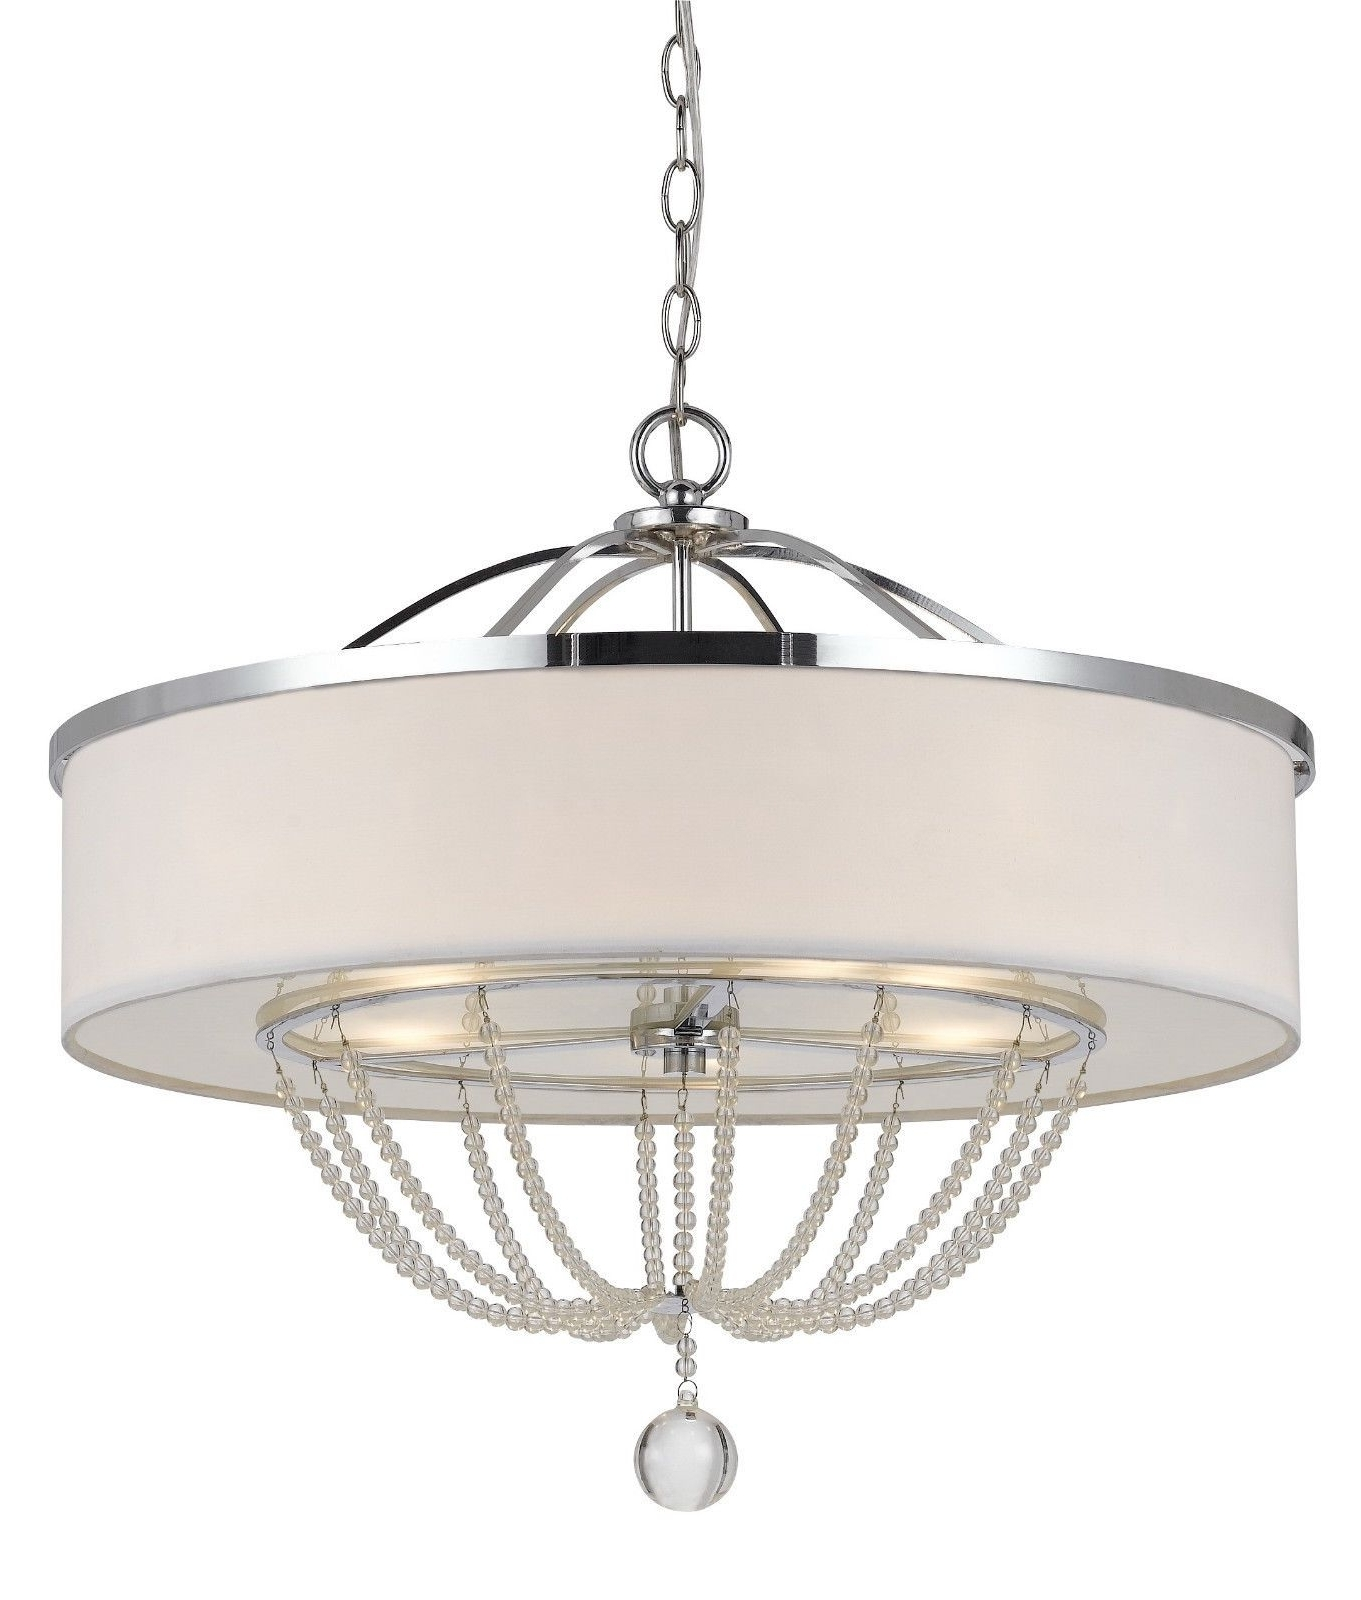 Famous Modern White Fabric With Chrome Metal & Crystals Drum Pendant Light With Modern Chrome Chandeliers (View 14 of 15)